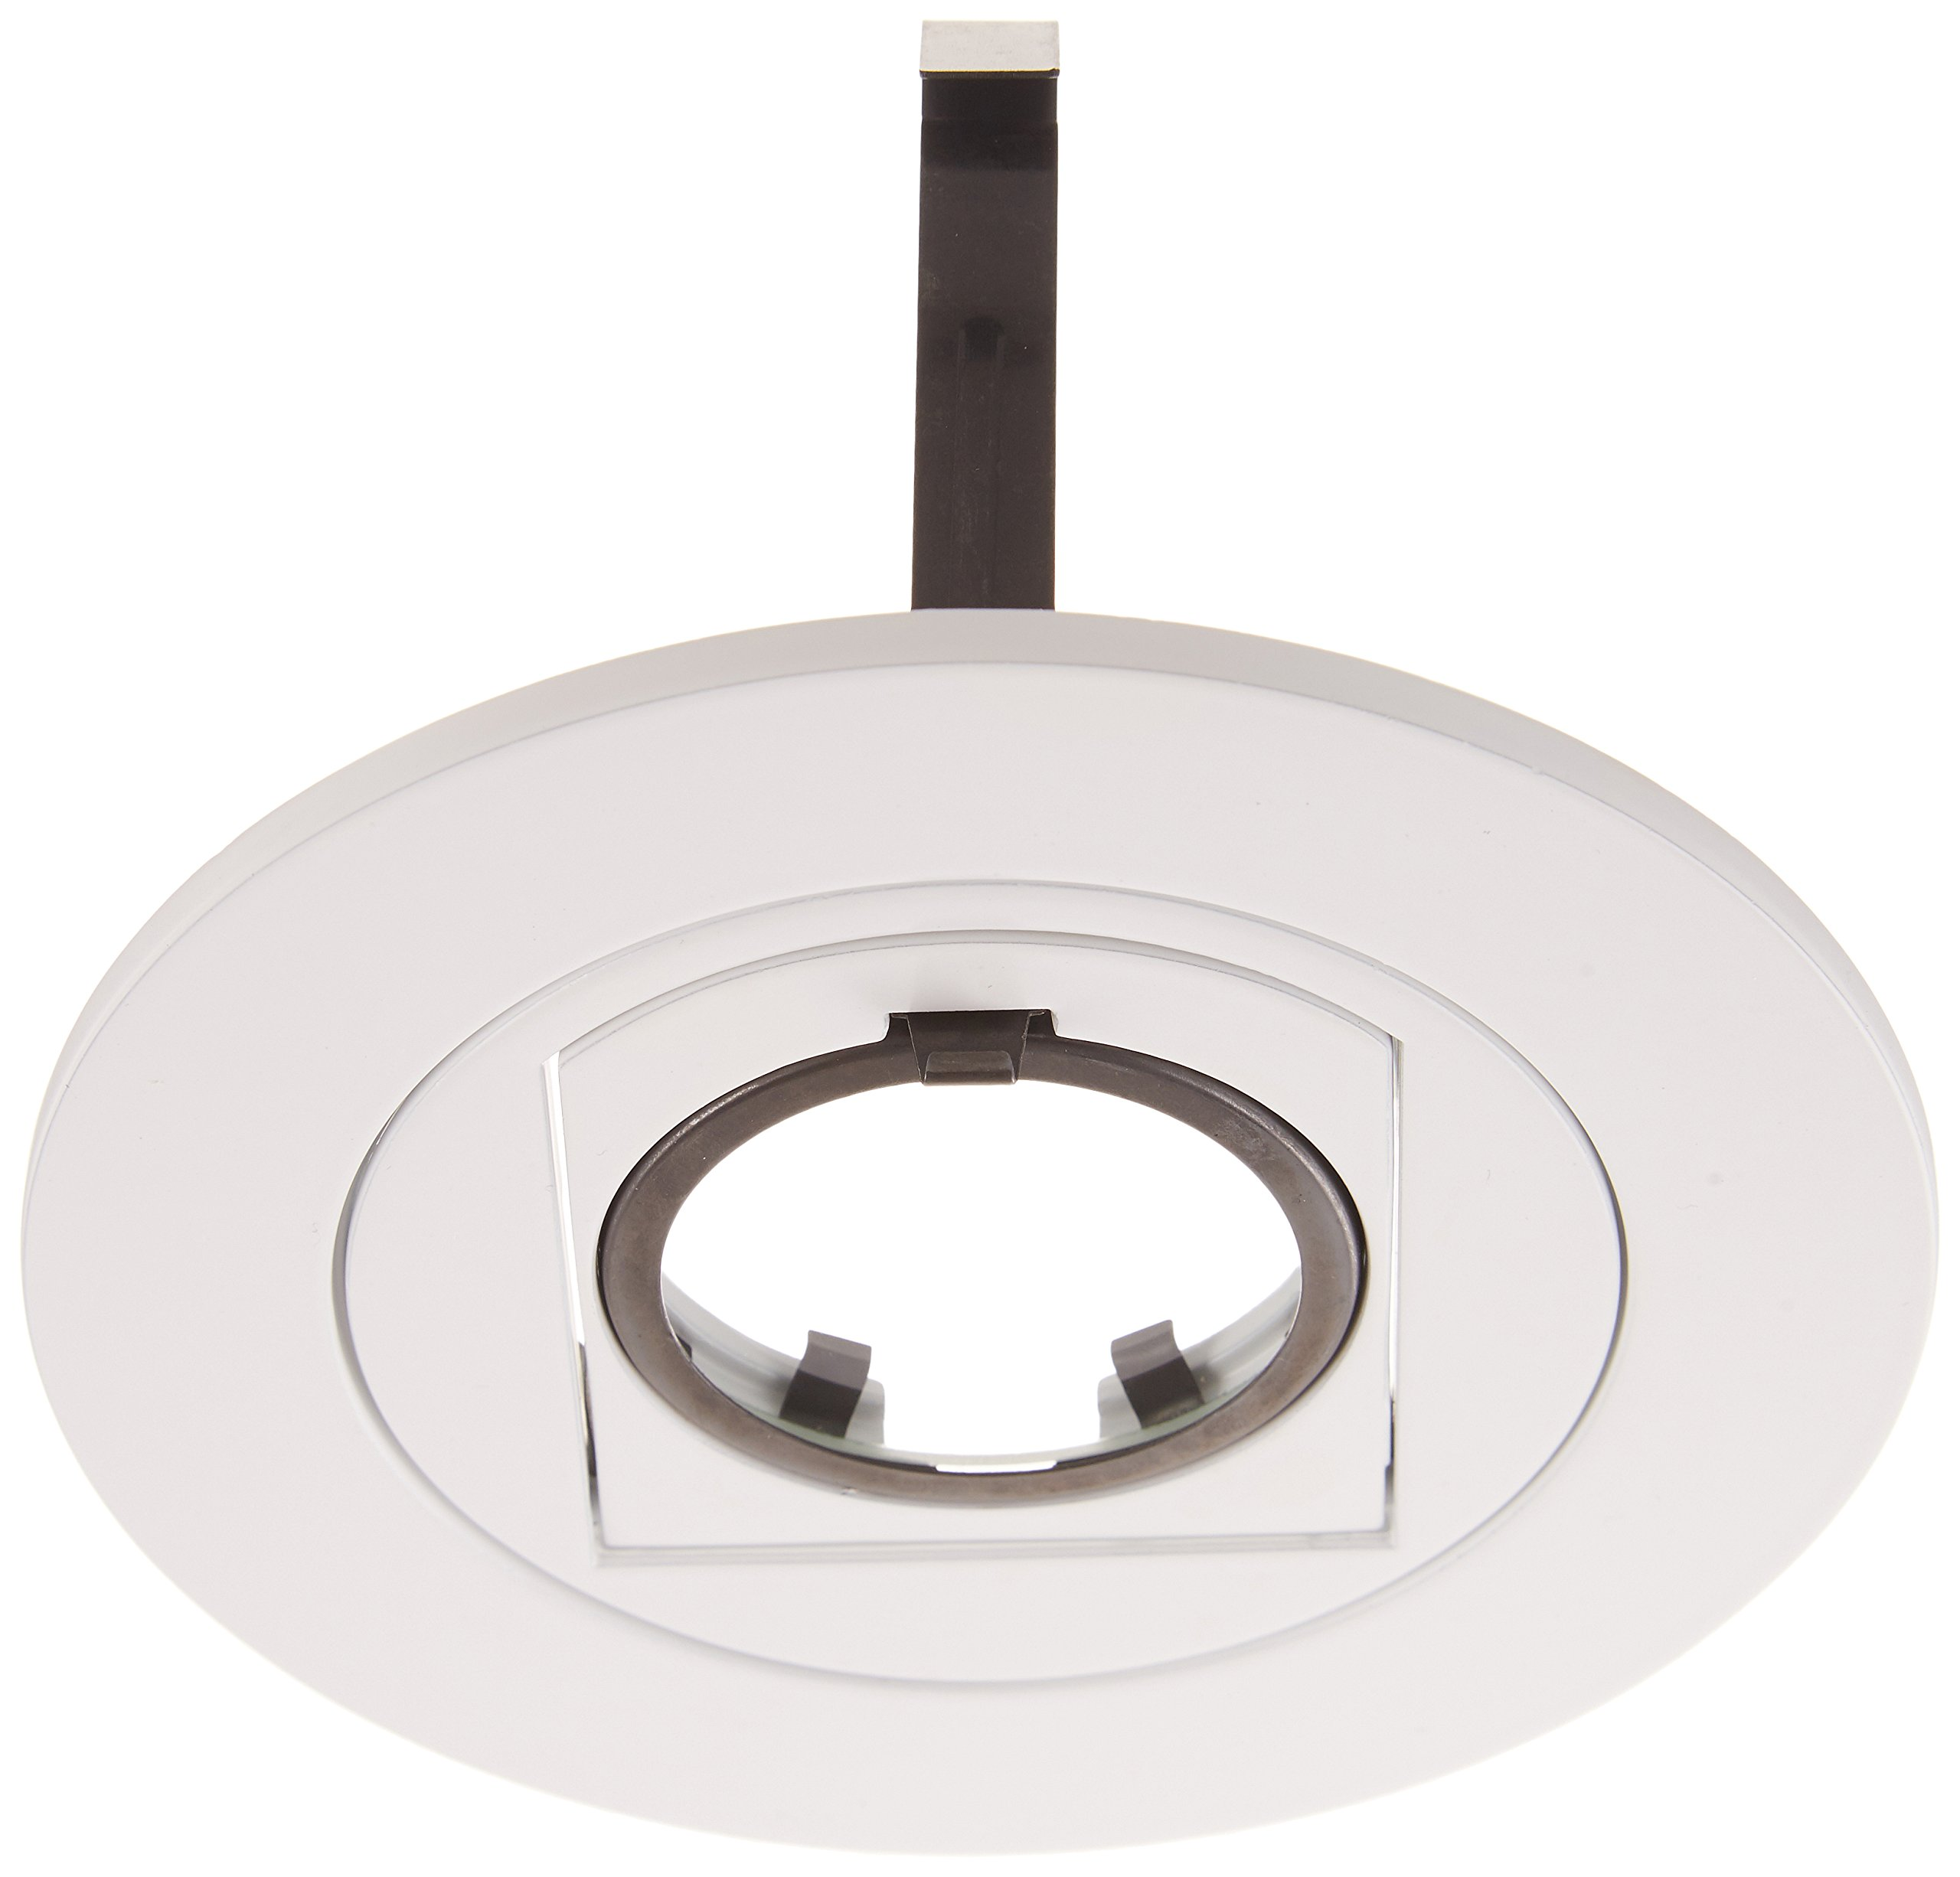 WAC Lighting HR-D425-WT Recessed Low Voltage Trim Adjust Spot